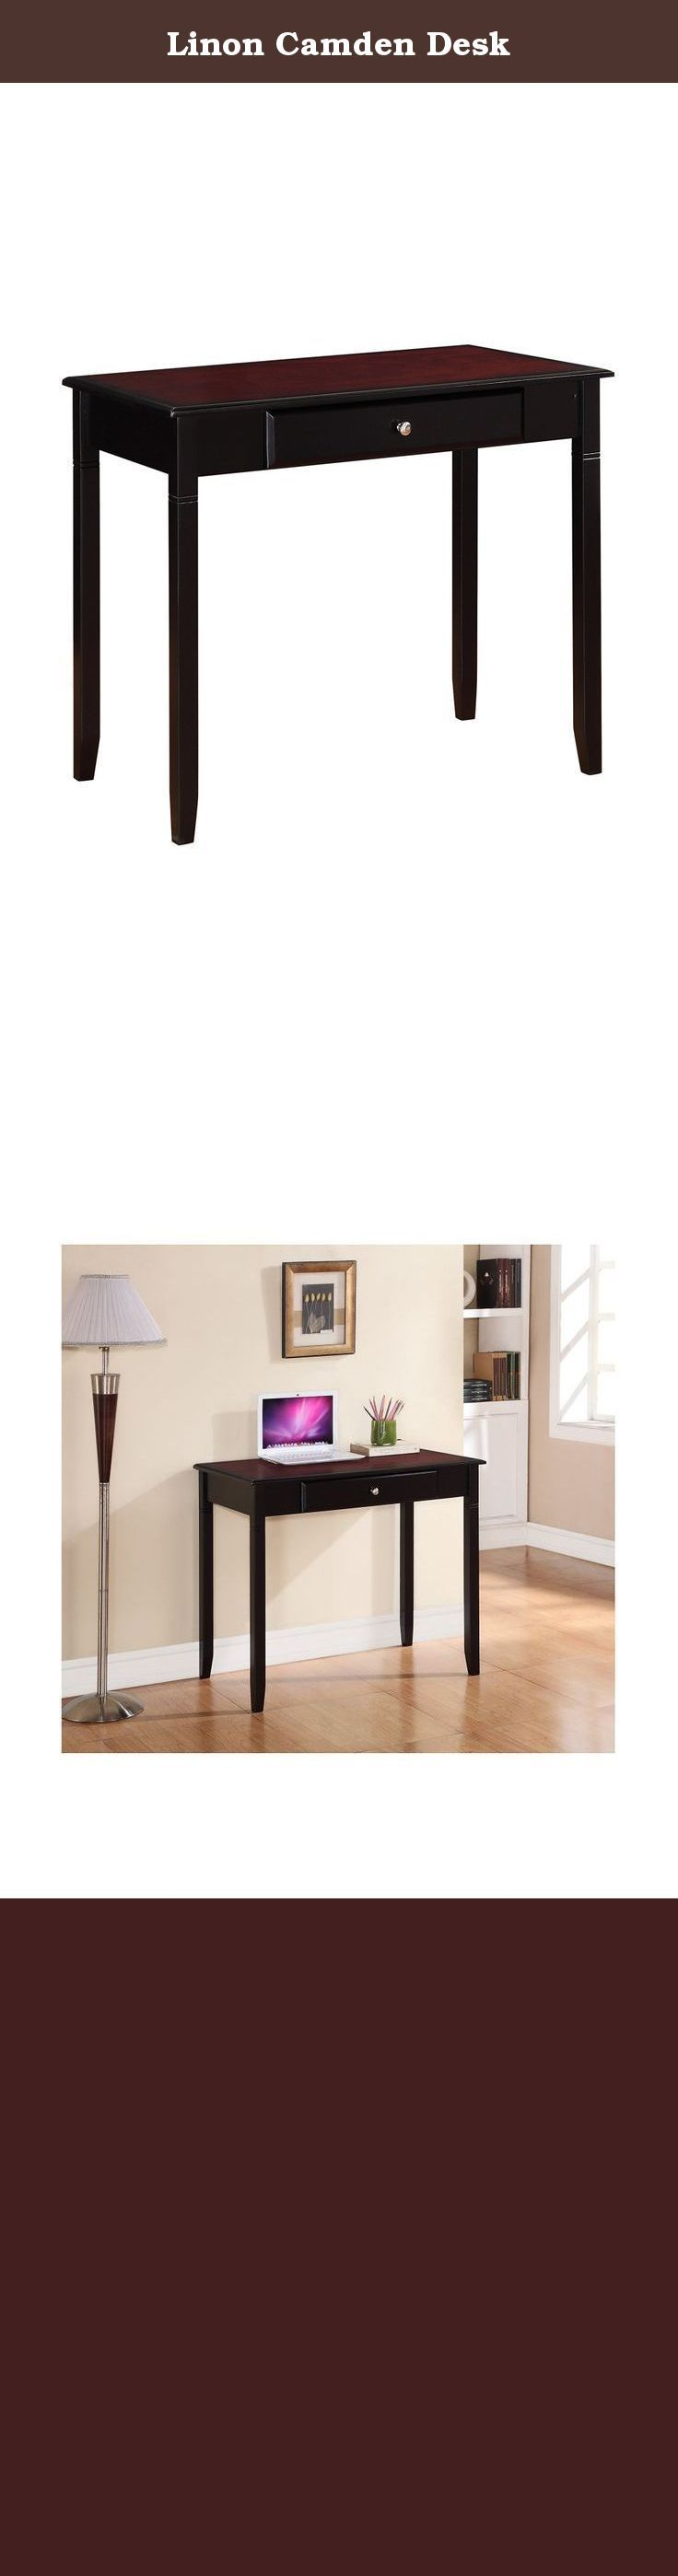 Linon Camden Desk. The Camden Collection has a transitional design and style. Perfect for small spaces, each item occupies minimal floor space but provides ample storage and display space. The rich Black Cherry finish exudes sophistication. The Camden Desk is perfect for placing in a living space or home office. A single storage drawer keeps supplies neat and tidy, while a large smooth top provides ample space for books and a laptop. A stylish and versatile addition to your home.